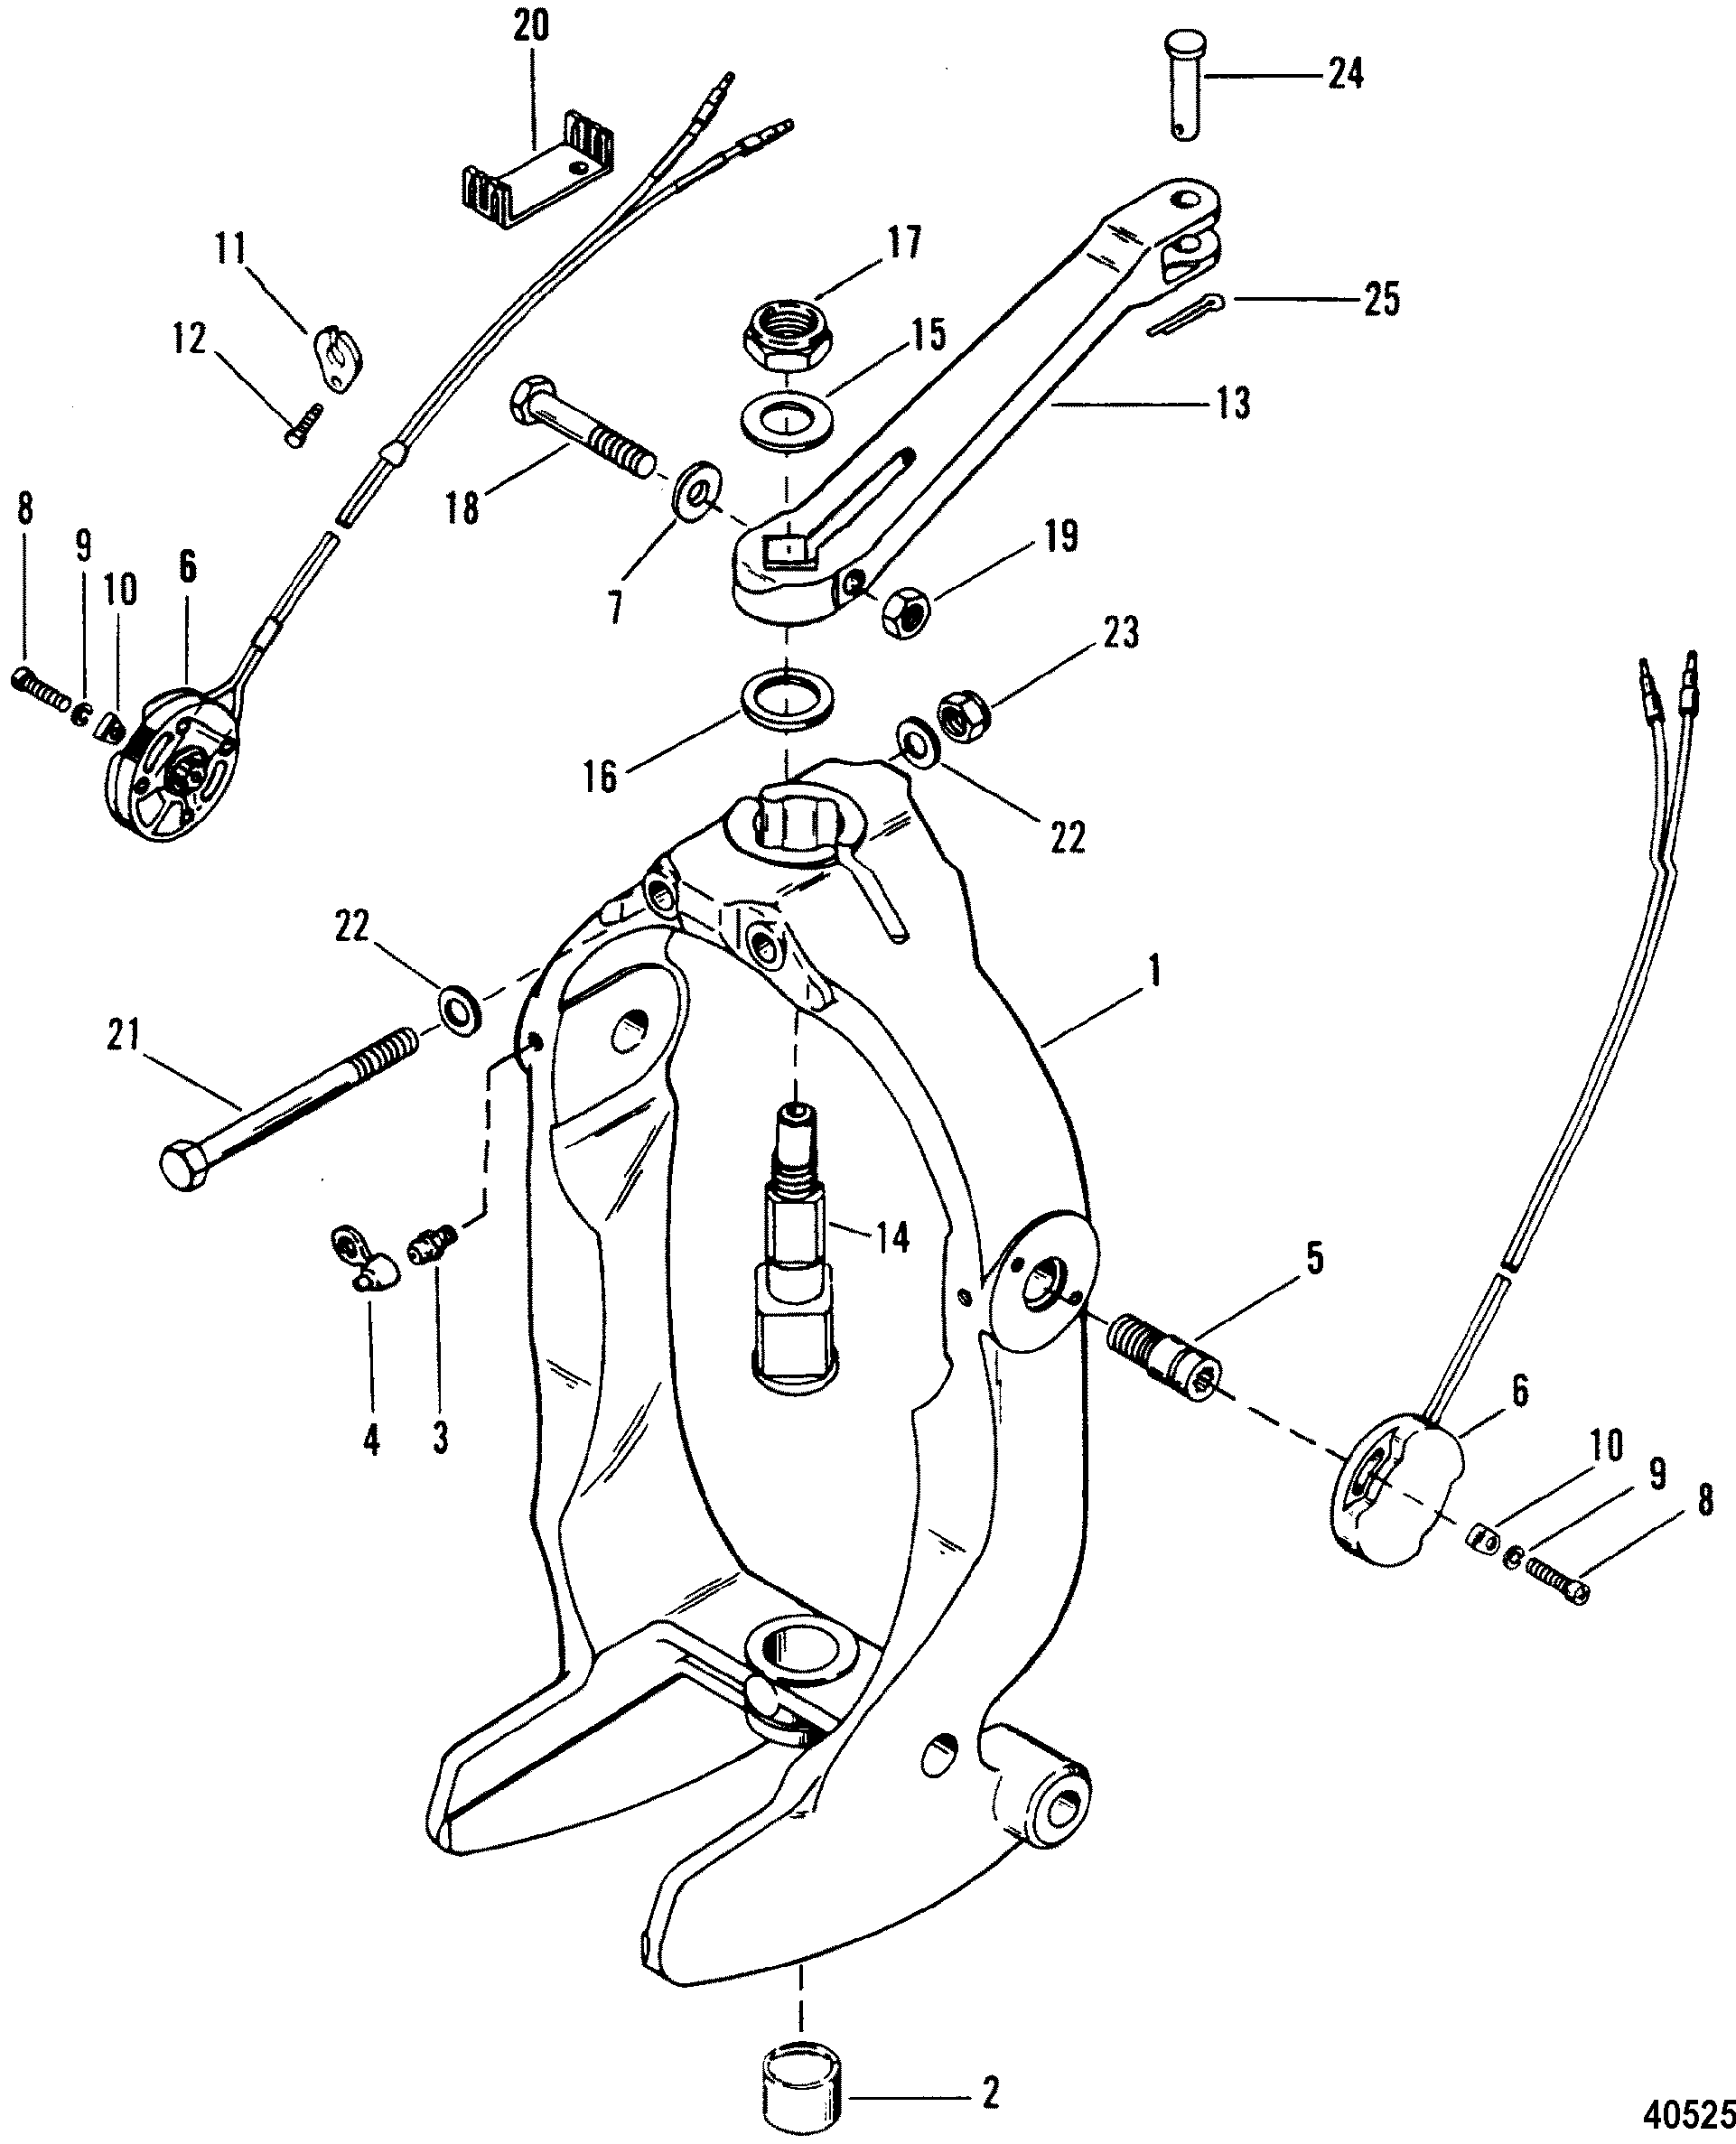 alpha one trim wiring diagram pioneer deh p4400 2 gimbal ring and steering lever for mercruiser